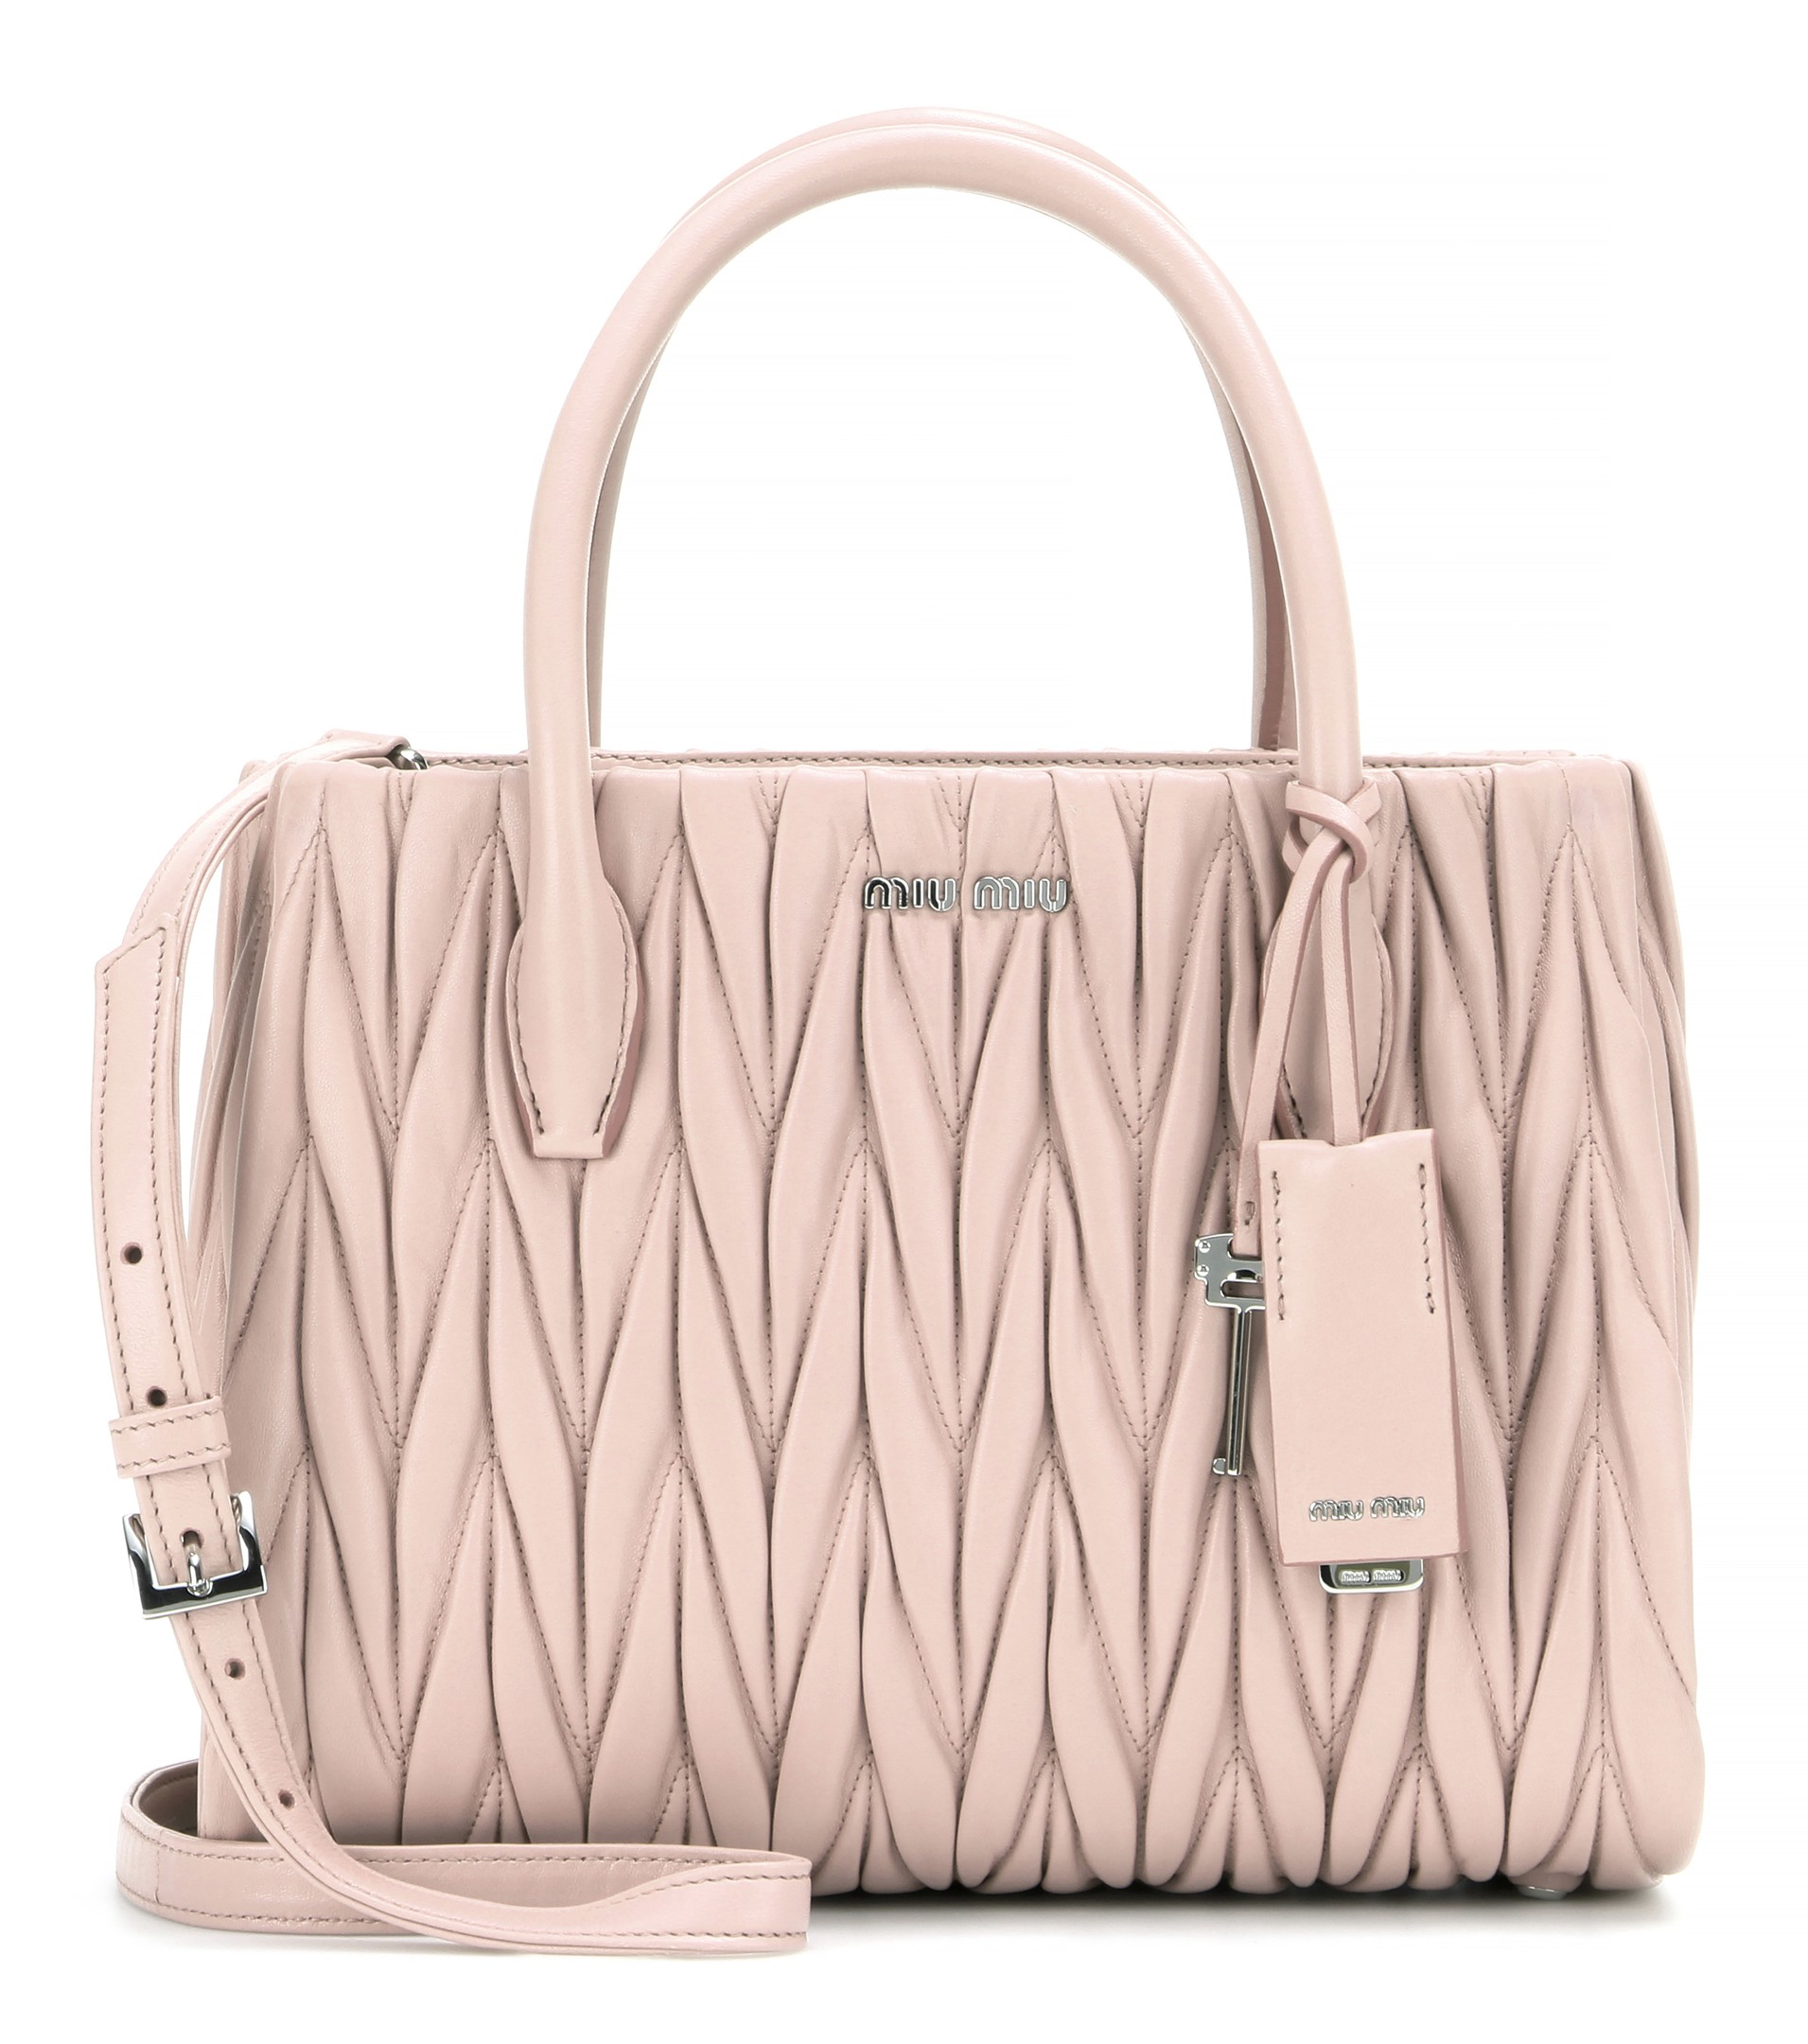 f6dd13911946 miu miu outlet hong kong - Miu miu Matelass¨¦ Leather Tote in Pink